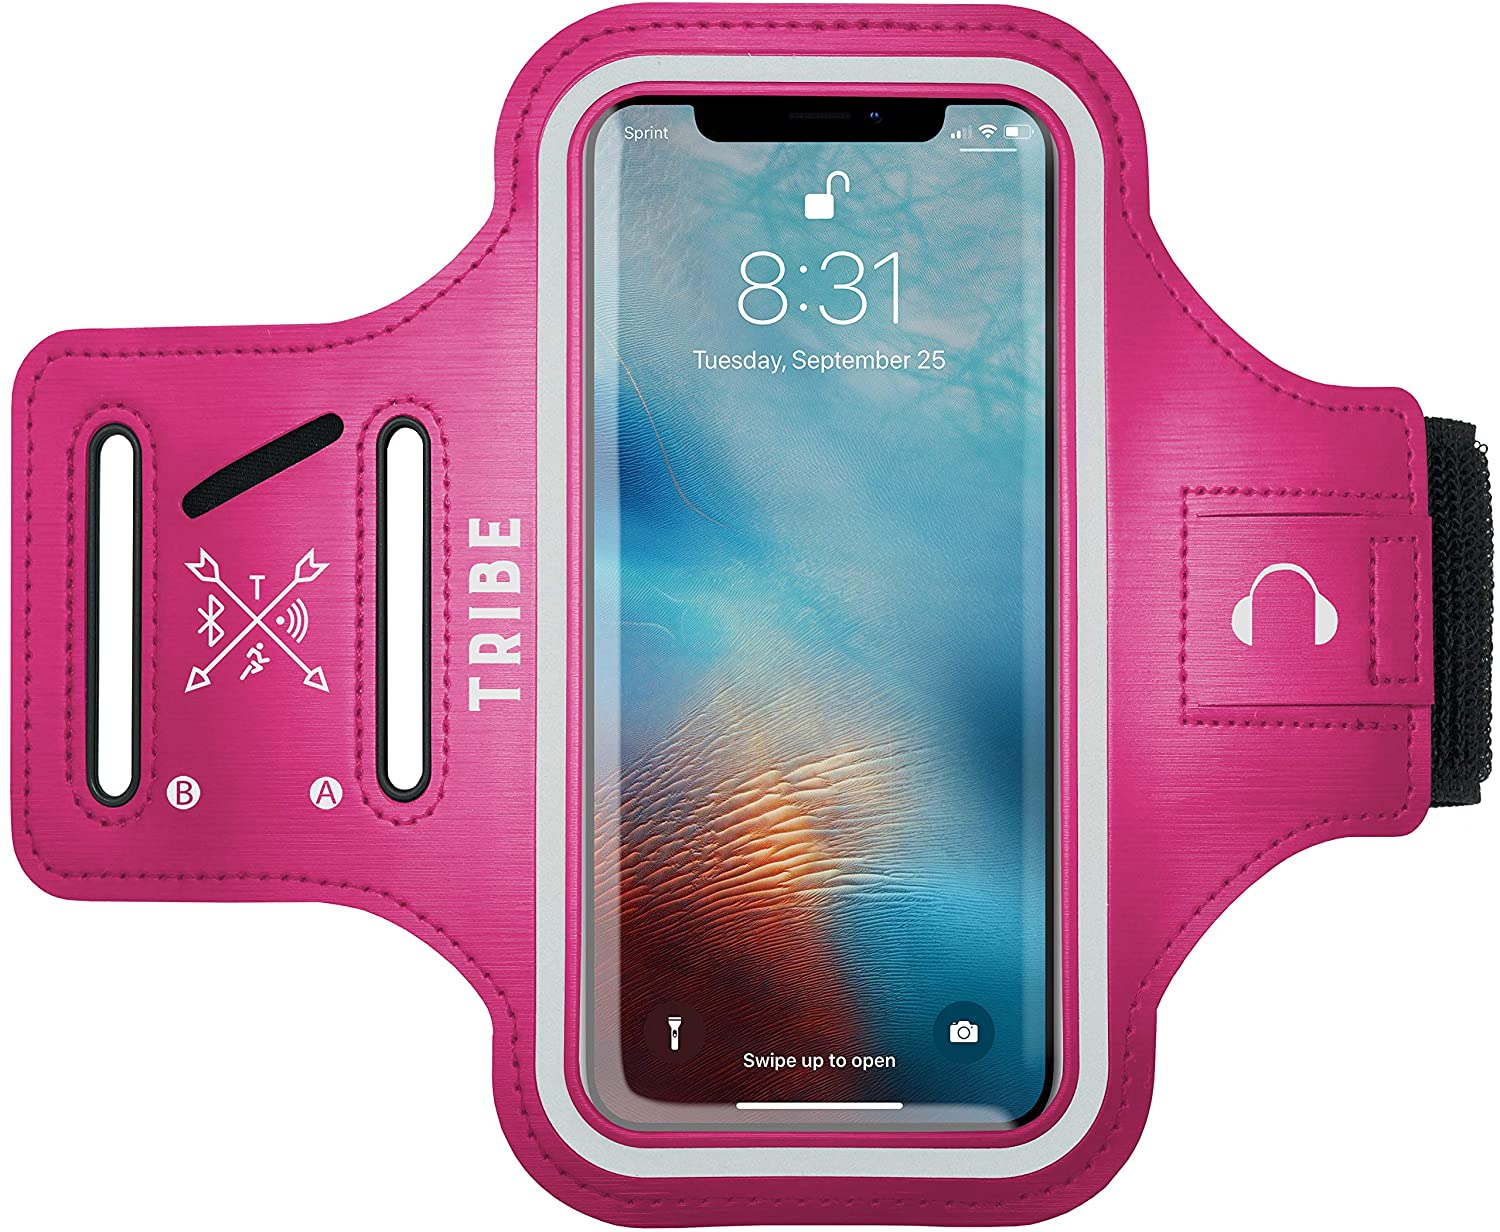 TRIBE Water Resistant Cell Phone Armband Case for iPhone X, Xs Samsung Galaxy S9, S8, S7, S6 with Adjustable Elastic Band & Key Holder for Running, ...